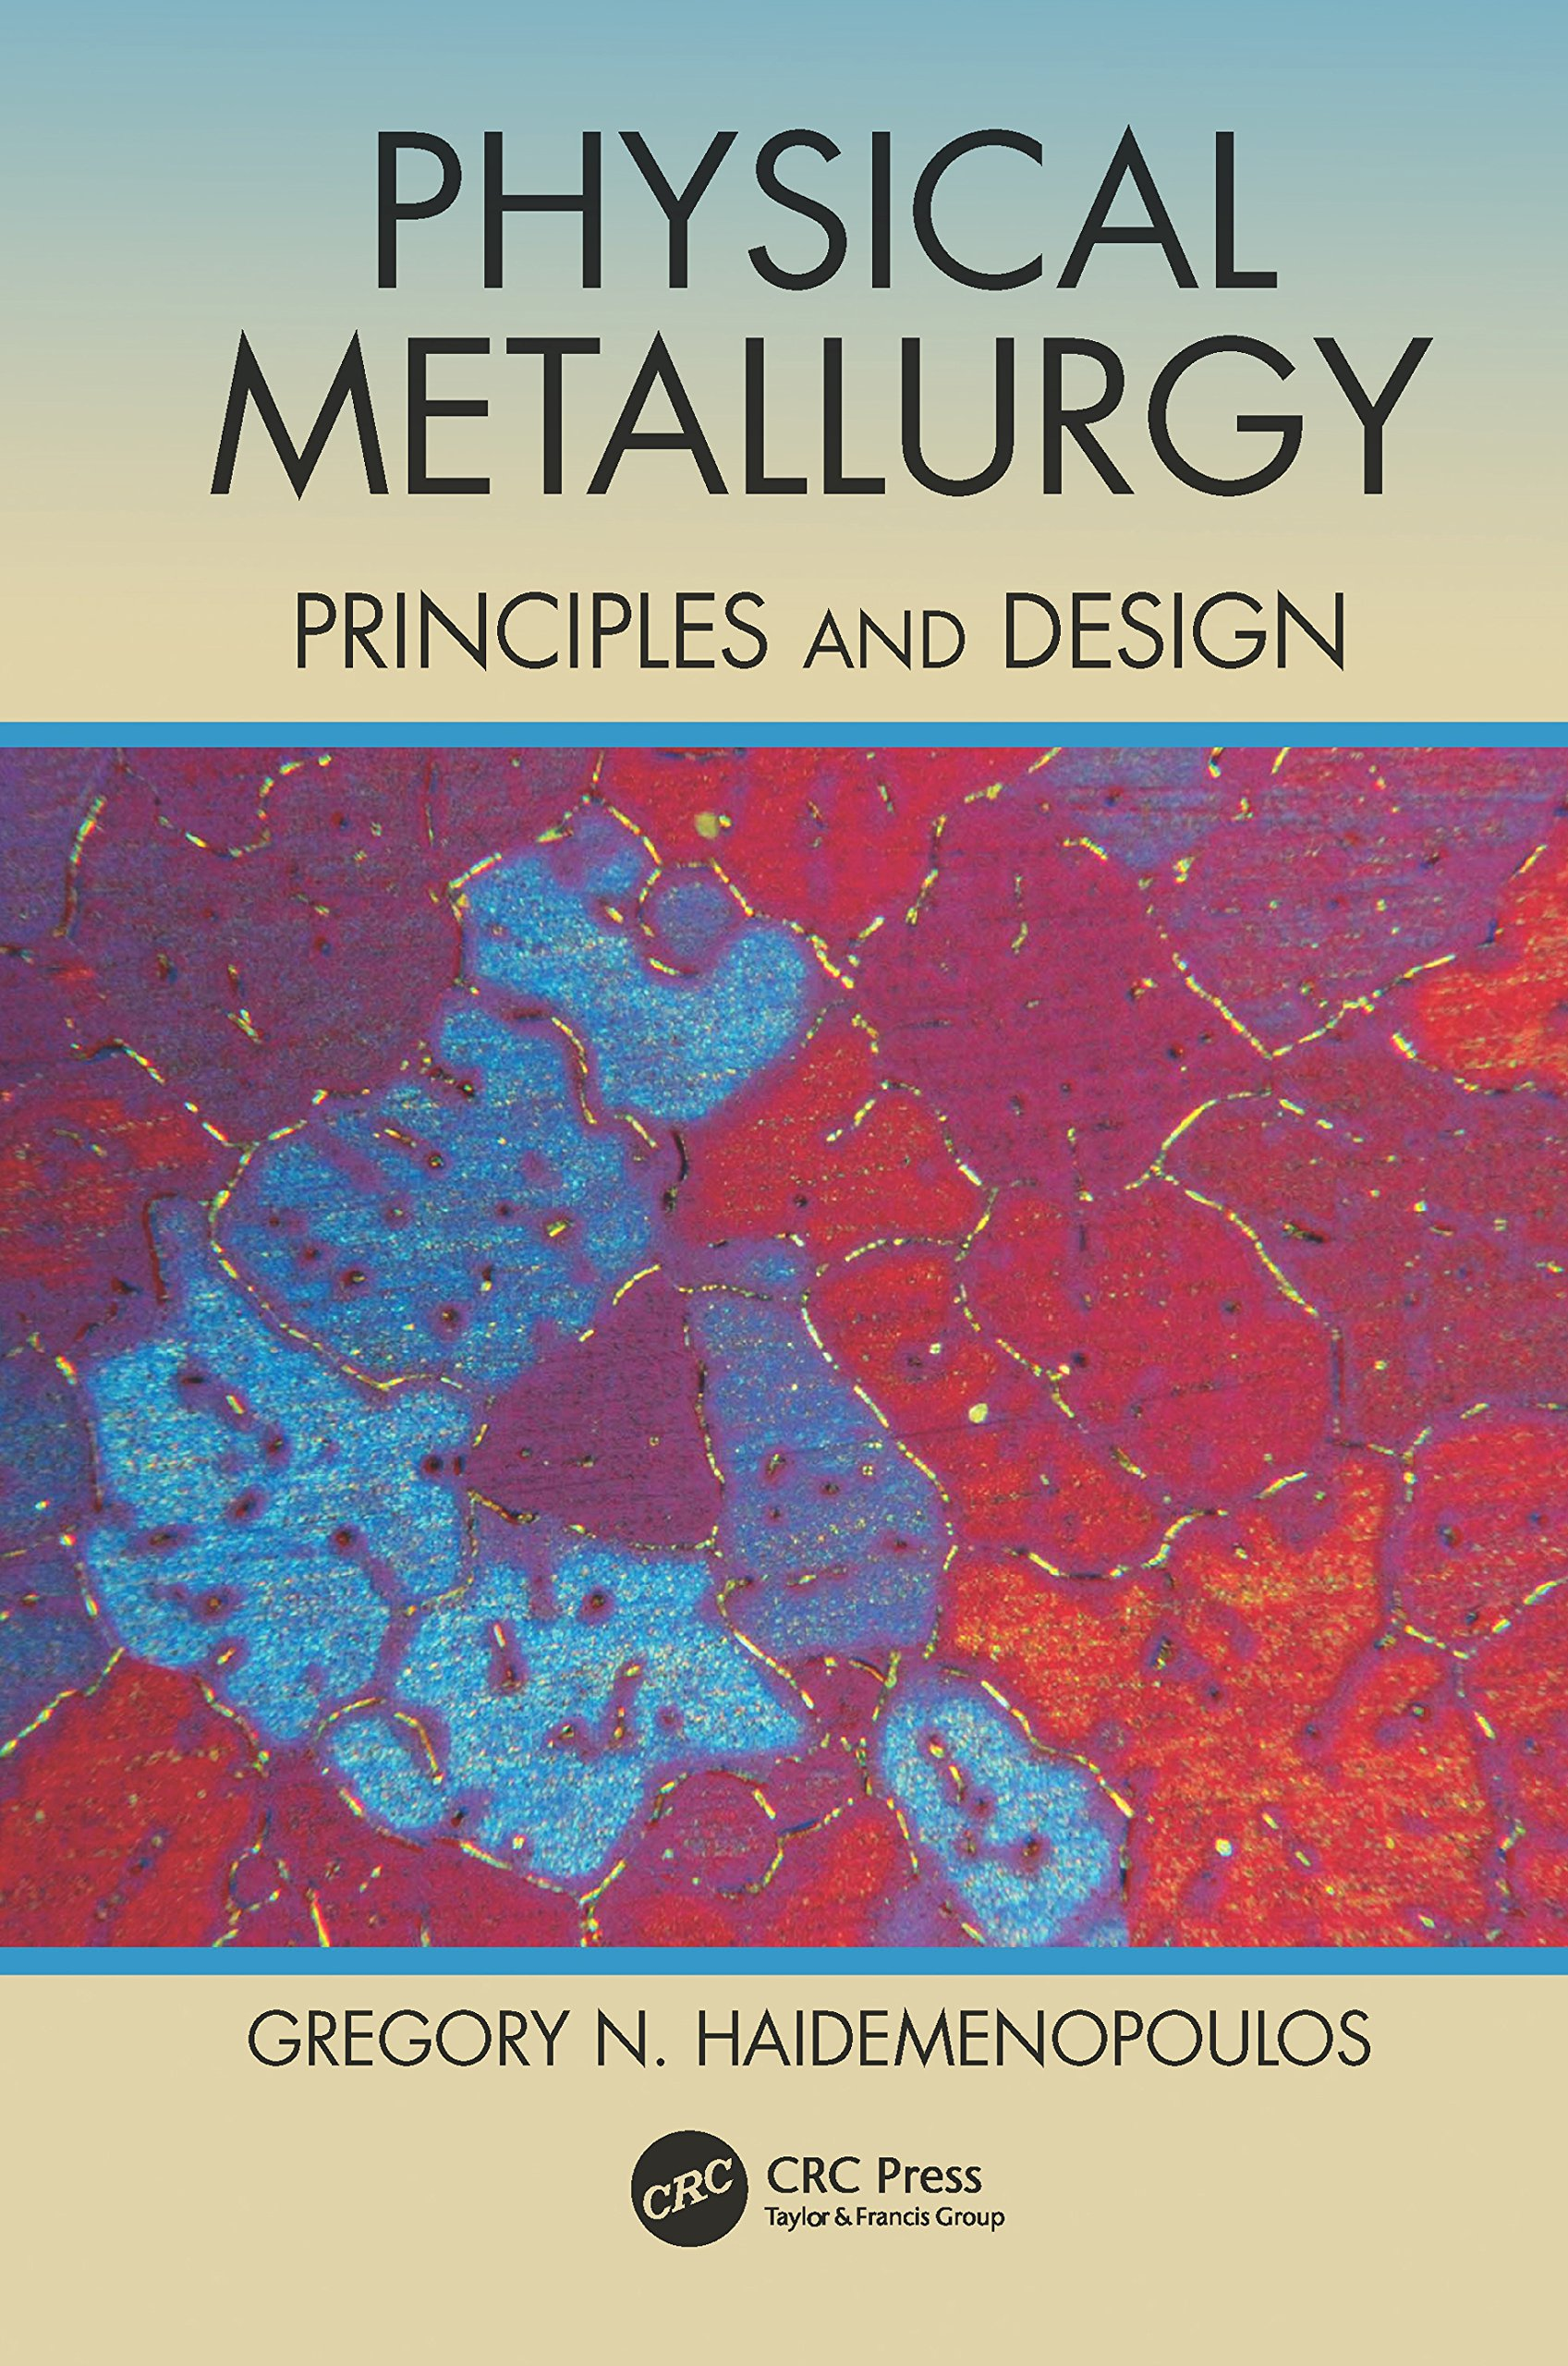 Image OfPhysical Metallurgy: Principles And Design (English Edition)